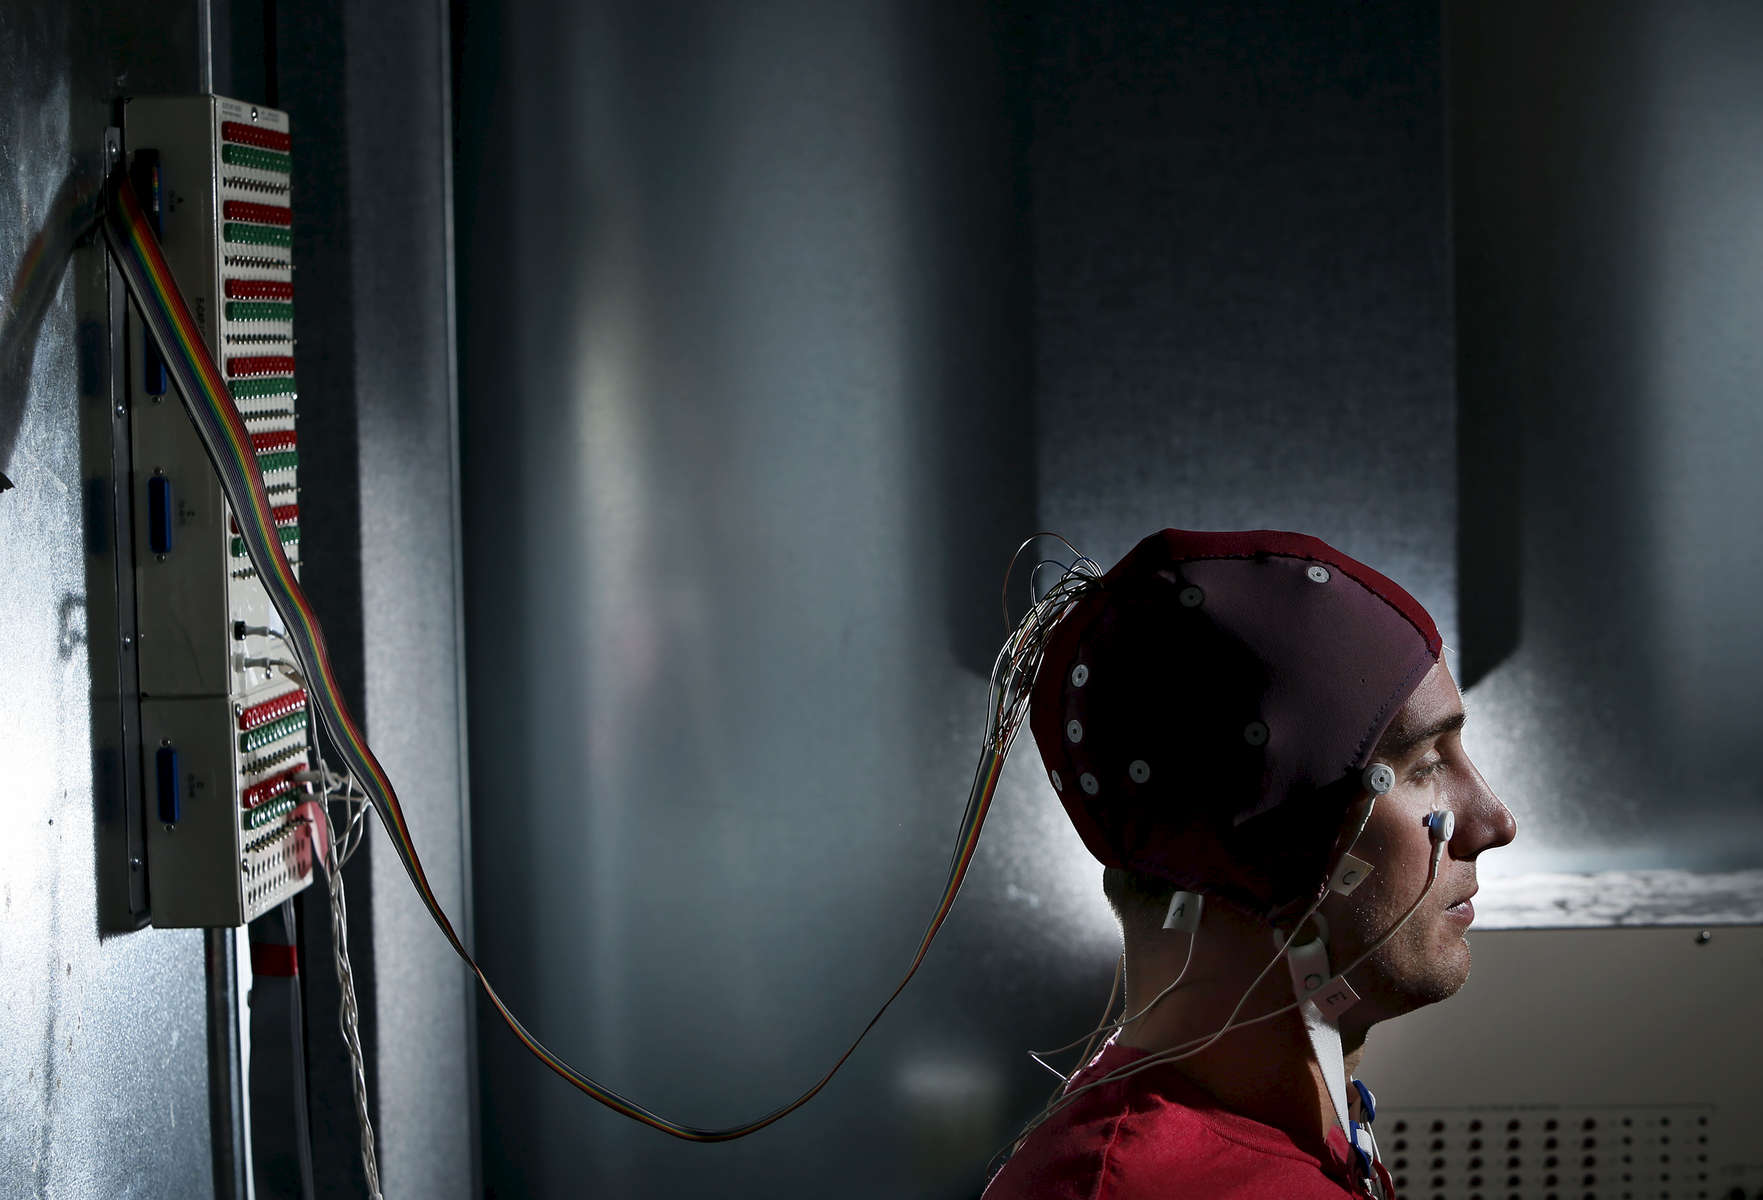 University of Oregon Psychology graduate student David Sutterer demonstrates the use of an EEG or electroencephalogram cap used to observe brain activity. Researchers in the Neurons to Minds cluster proposal would use EEG as one of the tools in their work to understand how the brain enables thought. Photographed at the University in Eugene on Monday, September 15, 2014. (Andy Nelson/The Register-Guard)